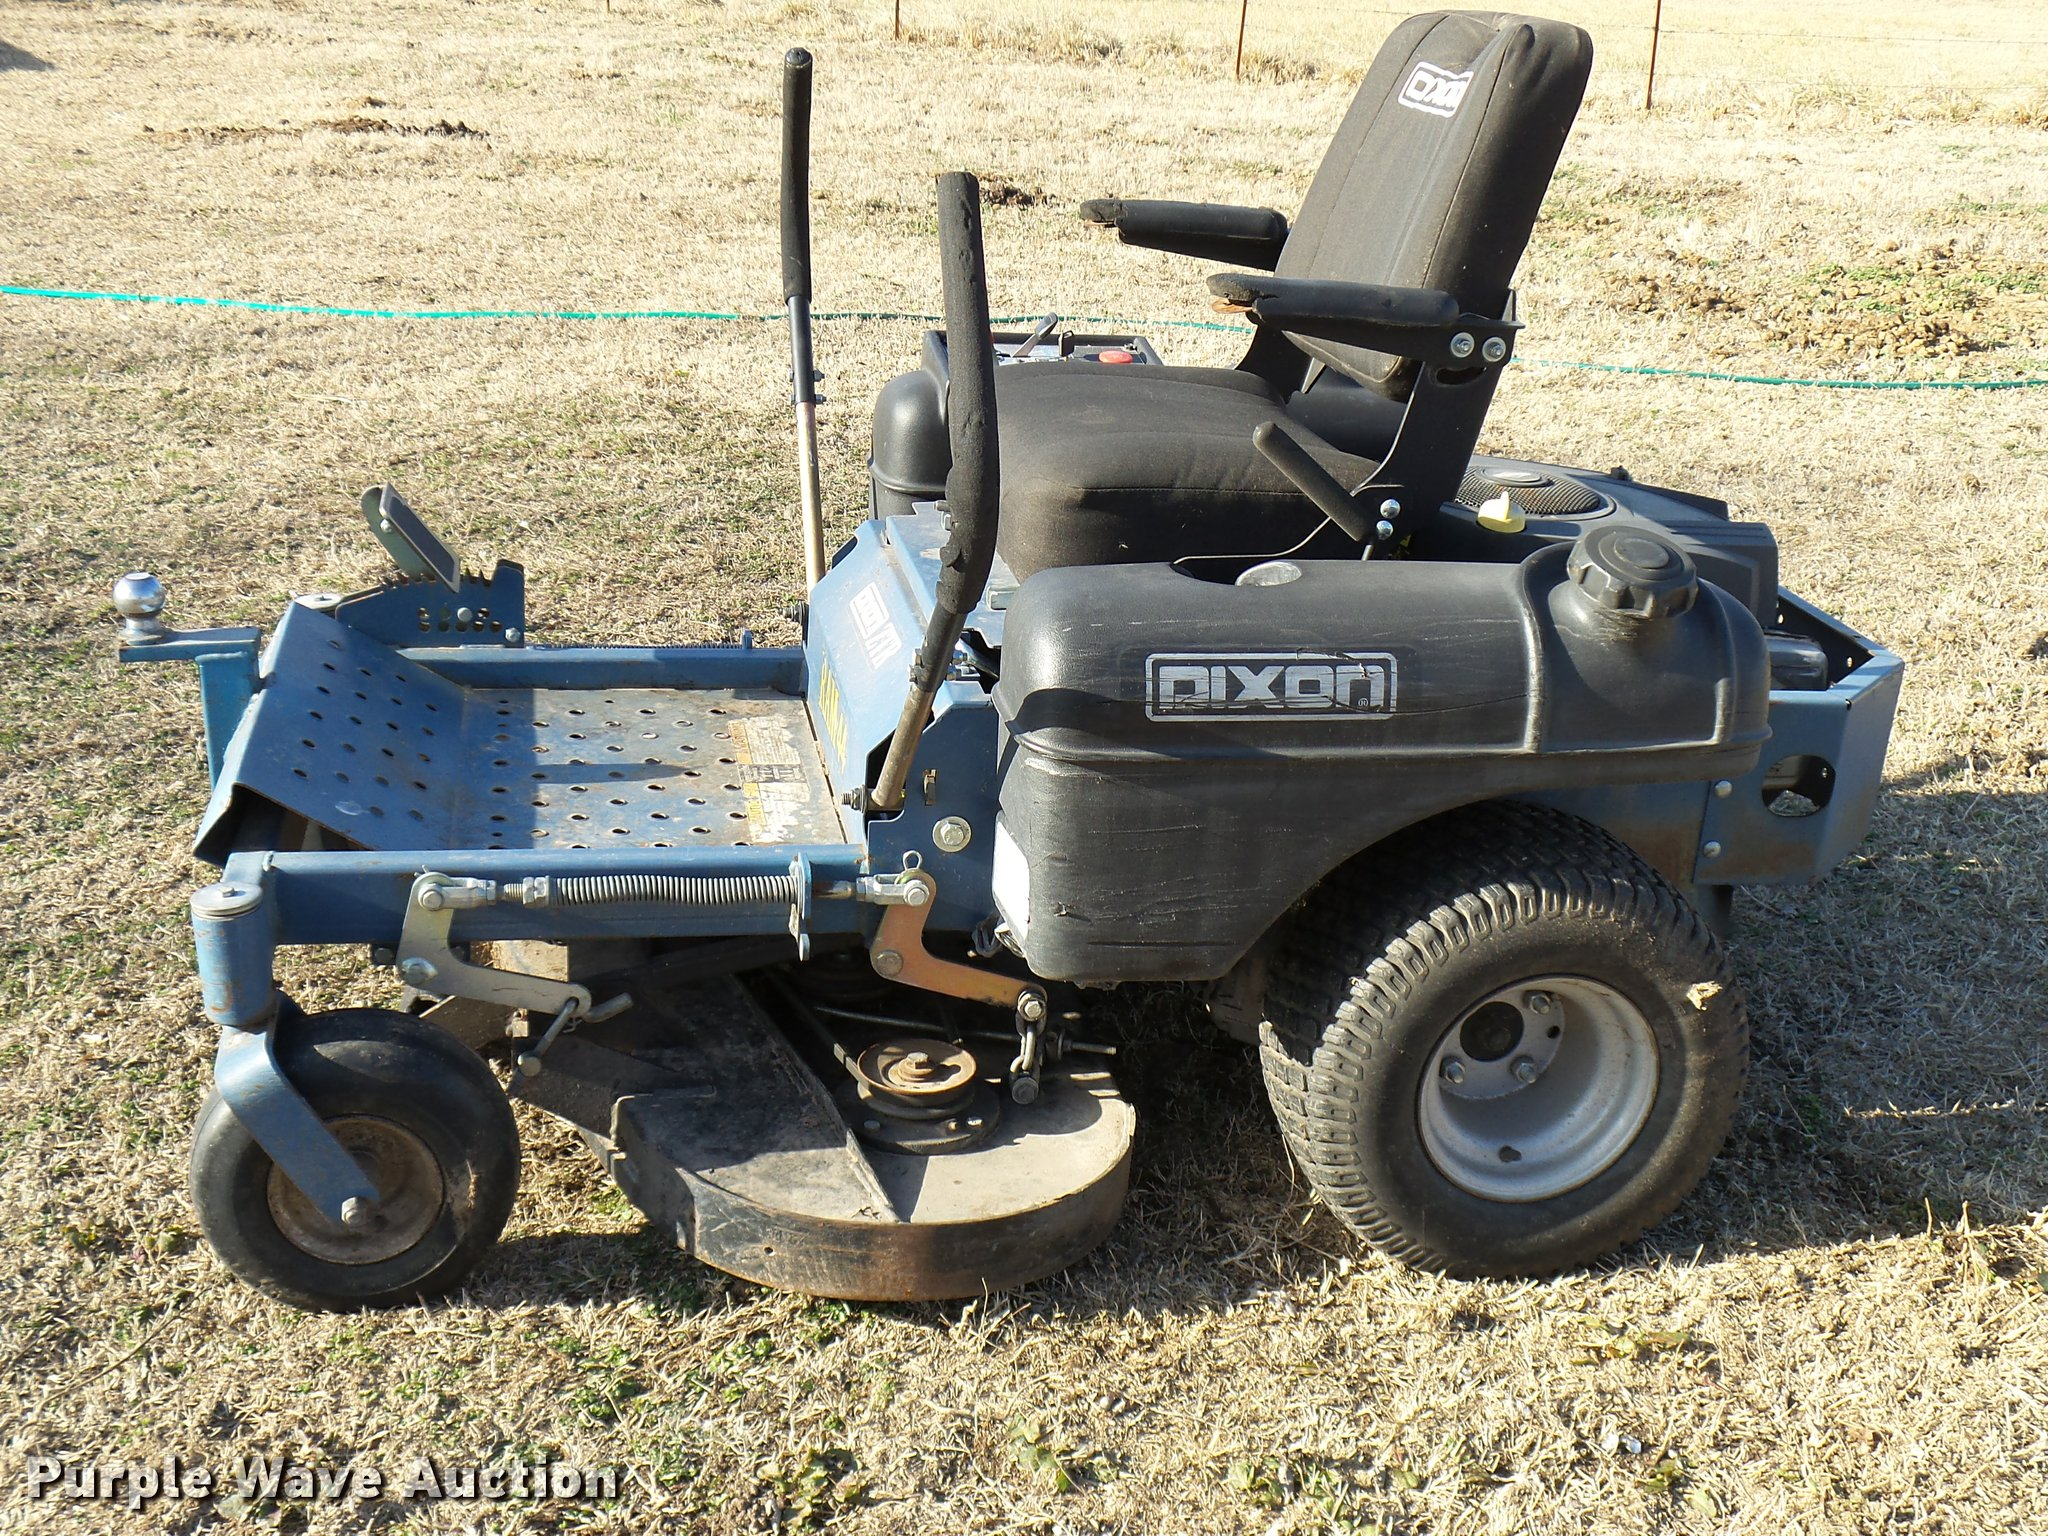 dixon ram 44 ztr lawn mower item dg9531 sold february 1